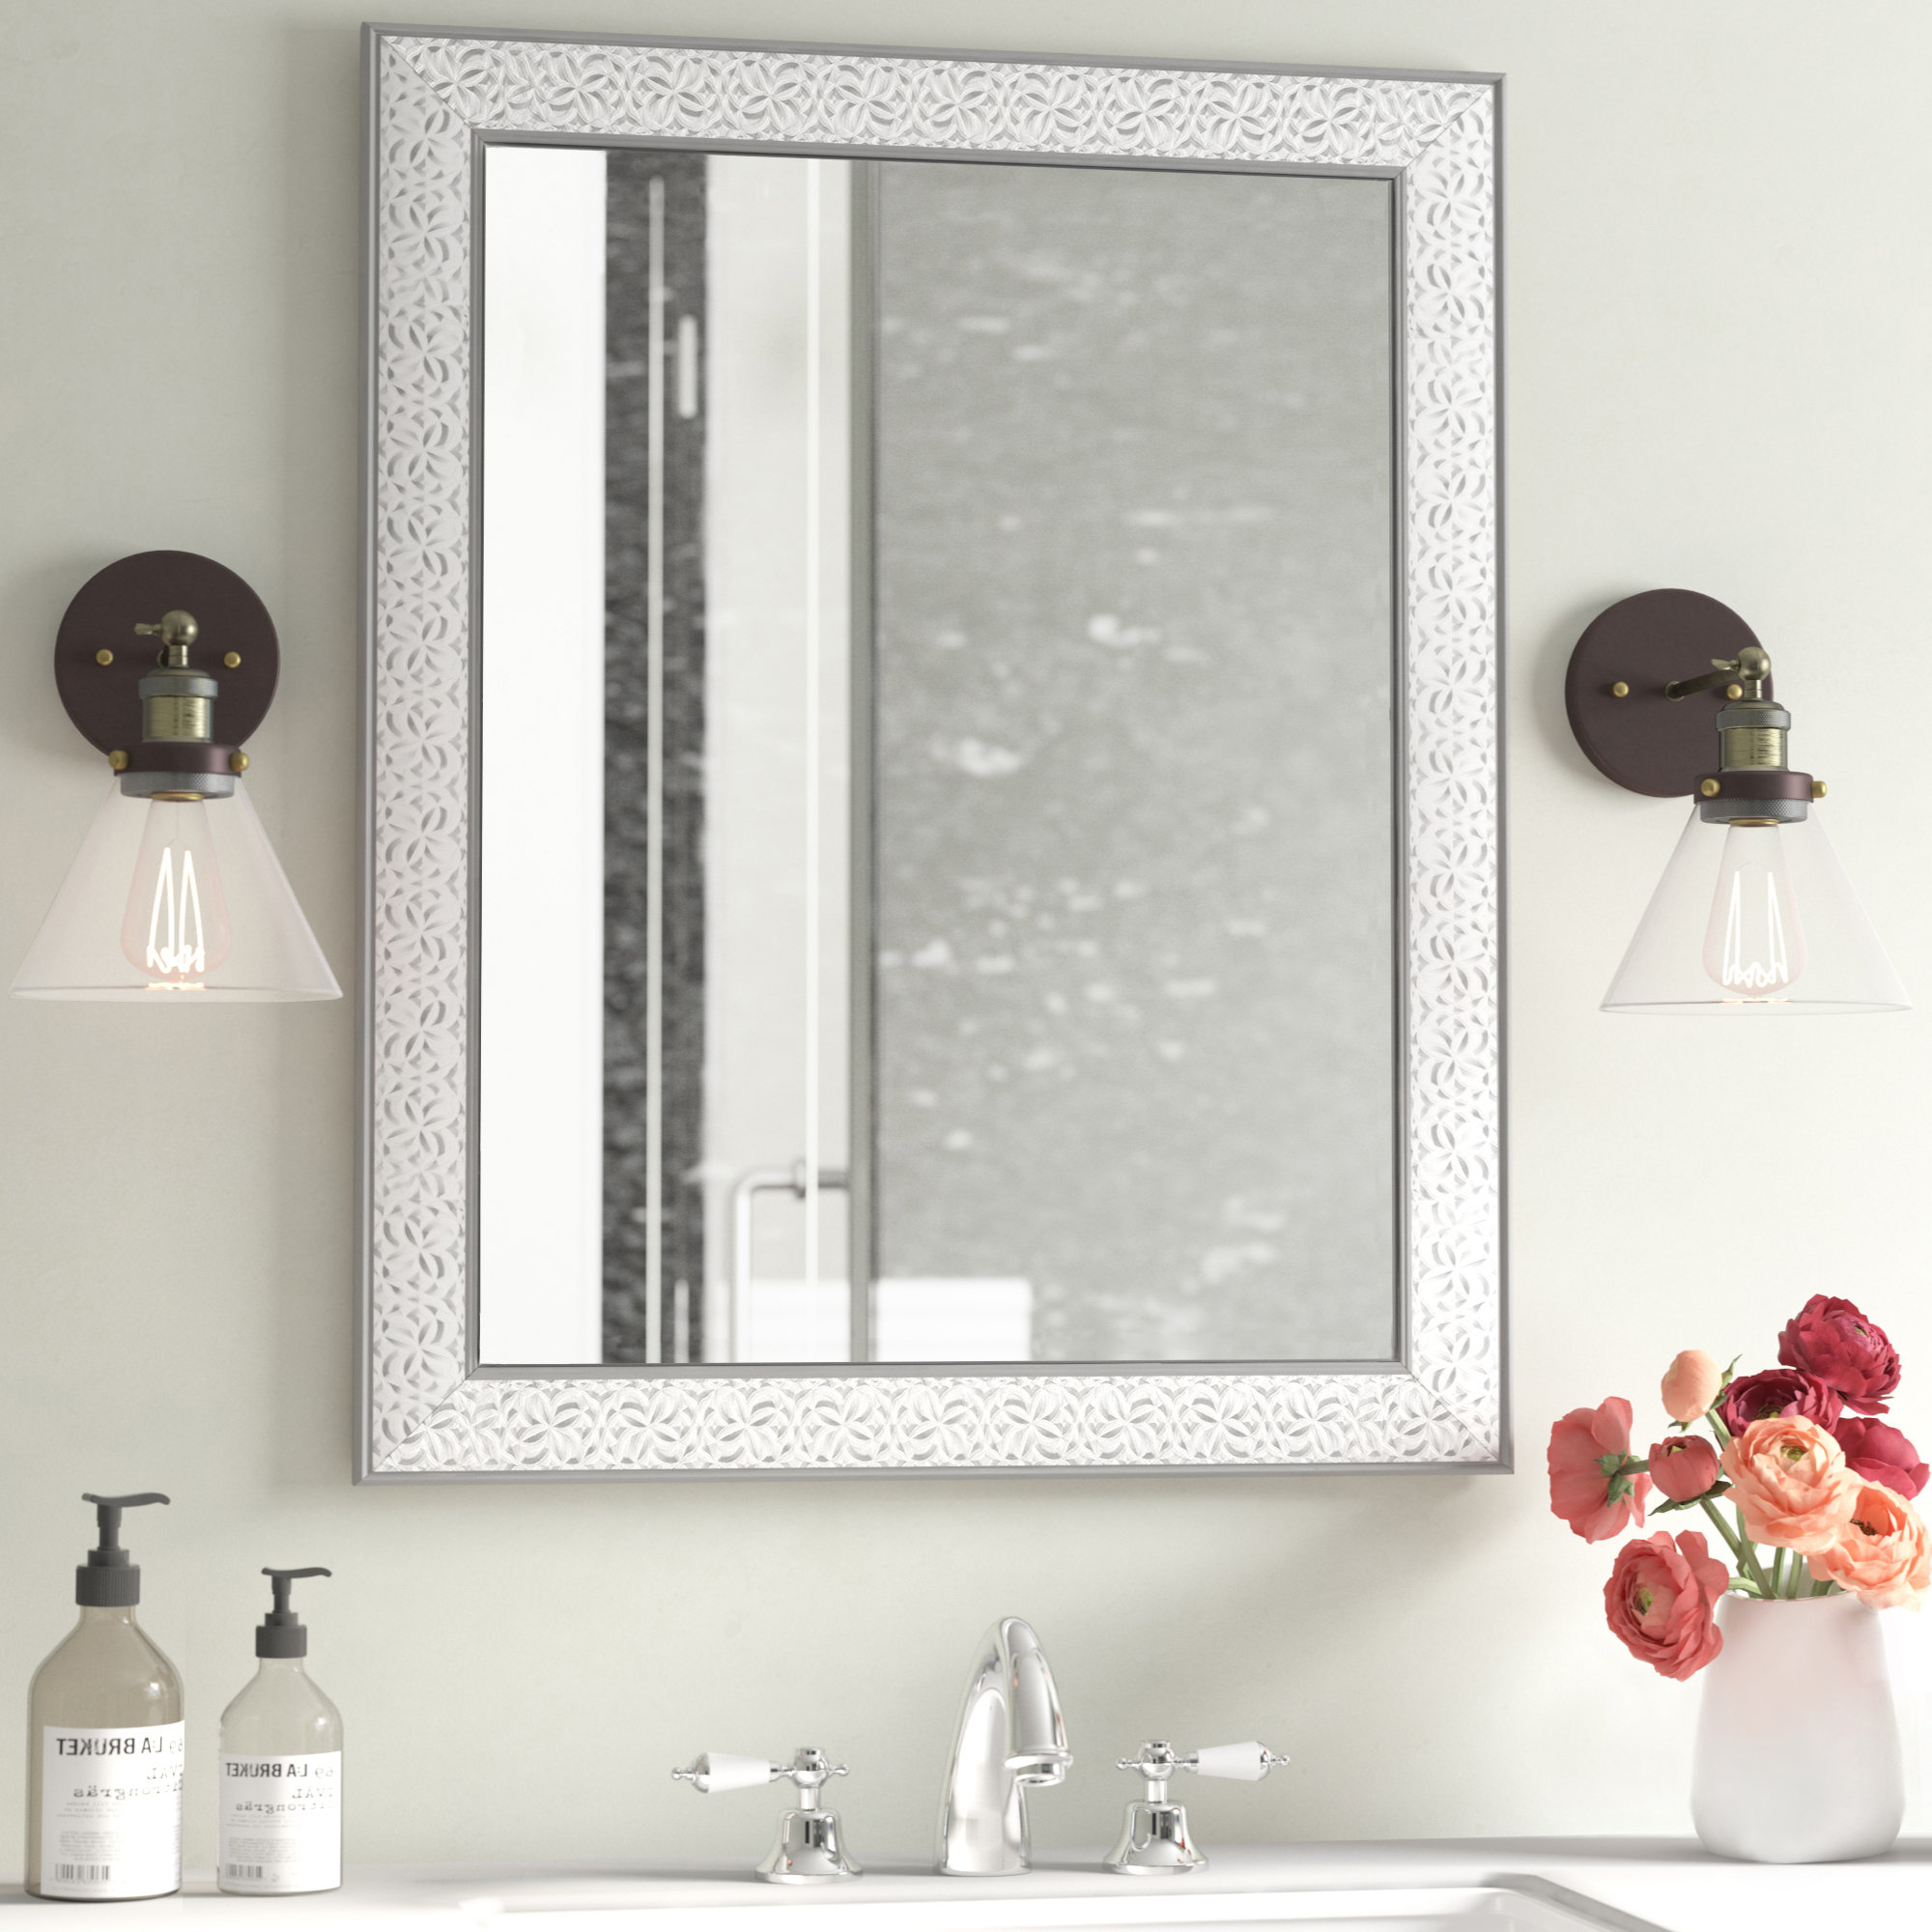 Encanto Modern & Contemporary Beveled Bathroom/vanity Mirror Regarding 2019 Marion Wall Mirrors (View 6 of 20)